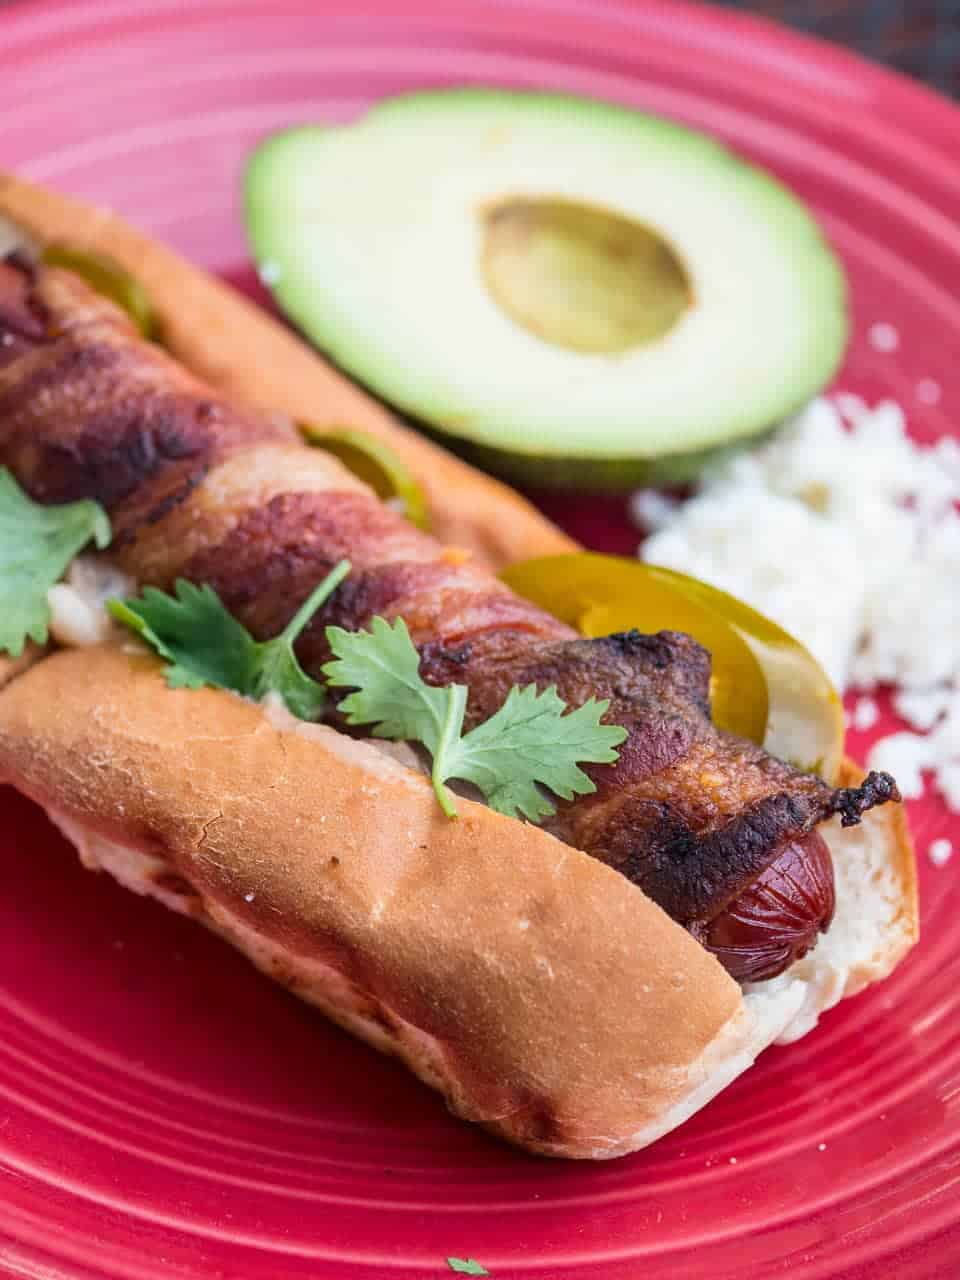 Grilled Mexican Hot Dogs | DadCooksDinner.com